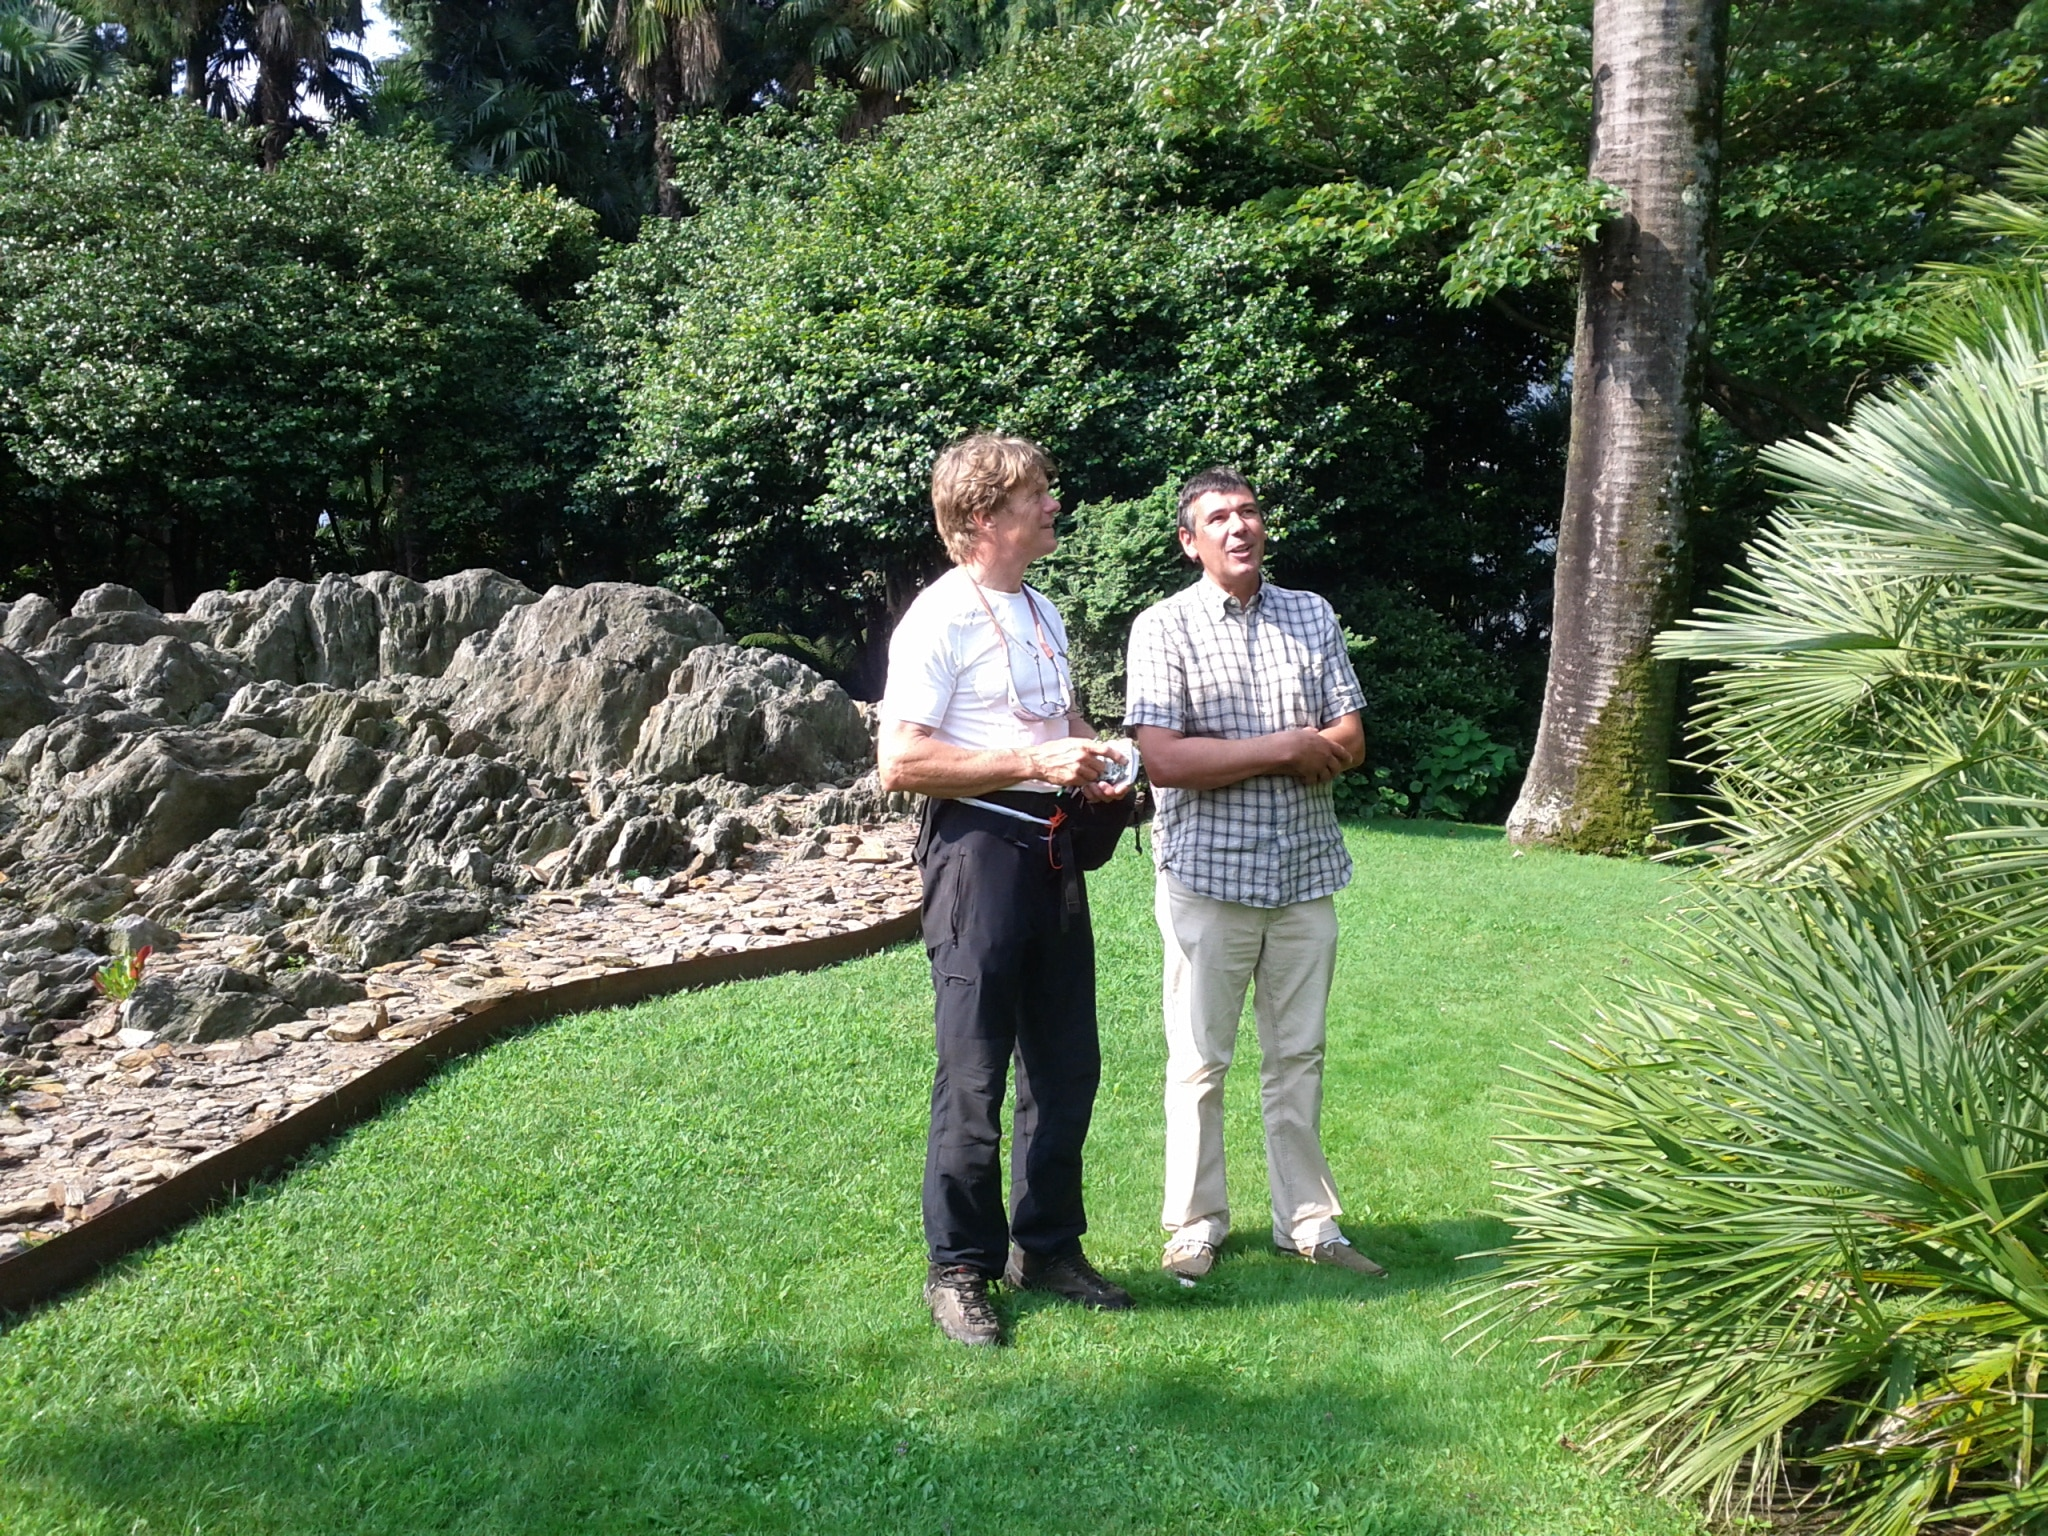 Guido Maspoli, the director of the botanical gardens on the islands of Brissago, showing me some of the tropical gardens.